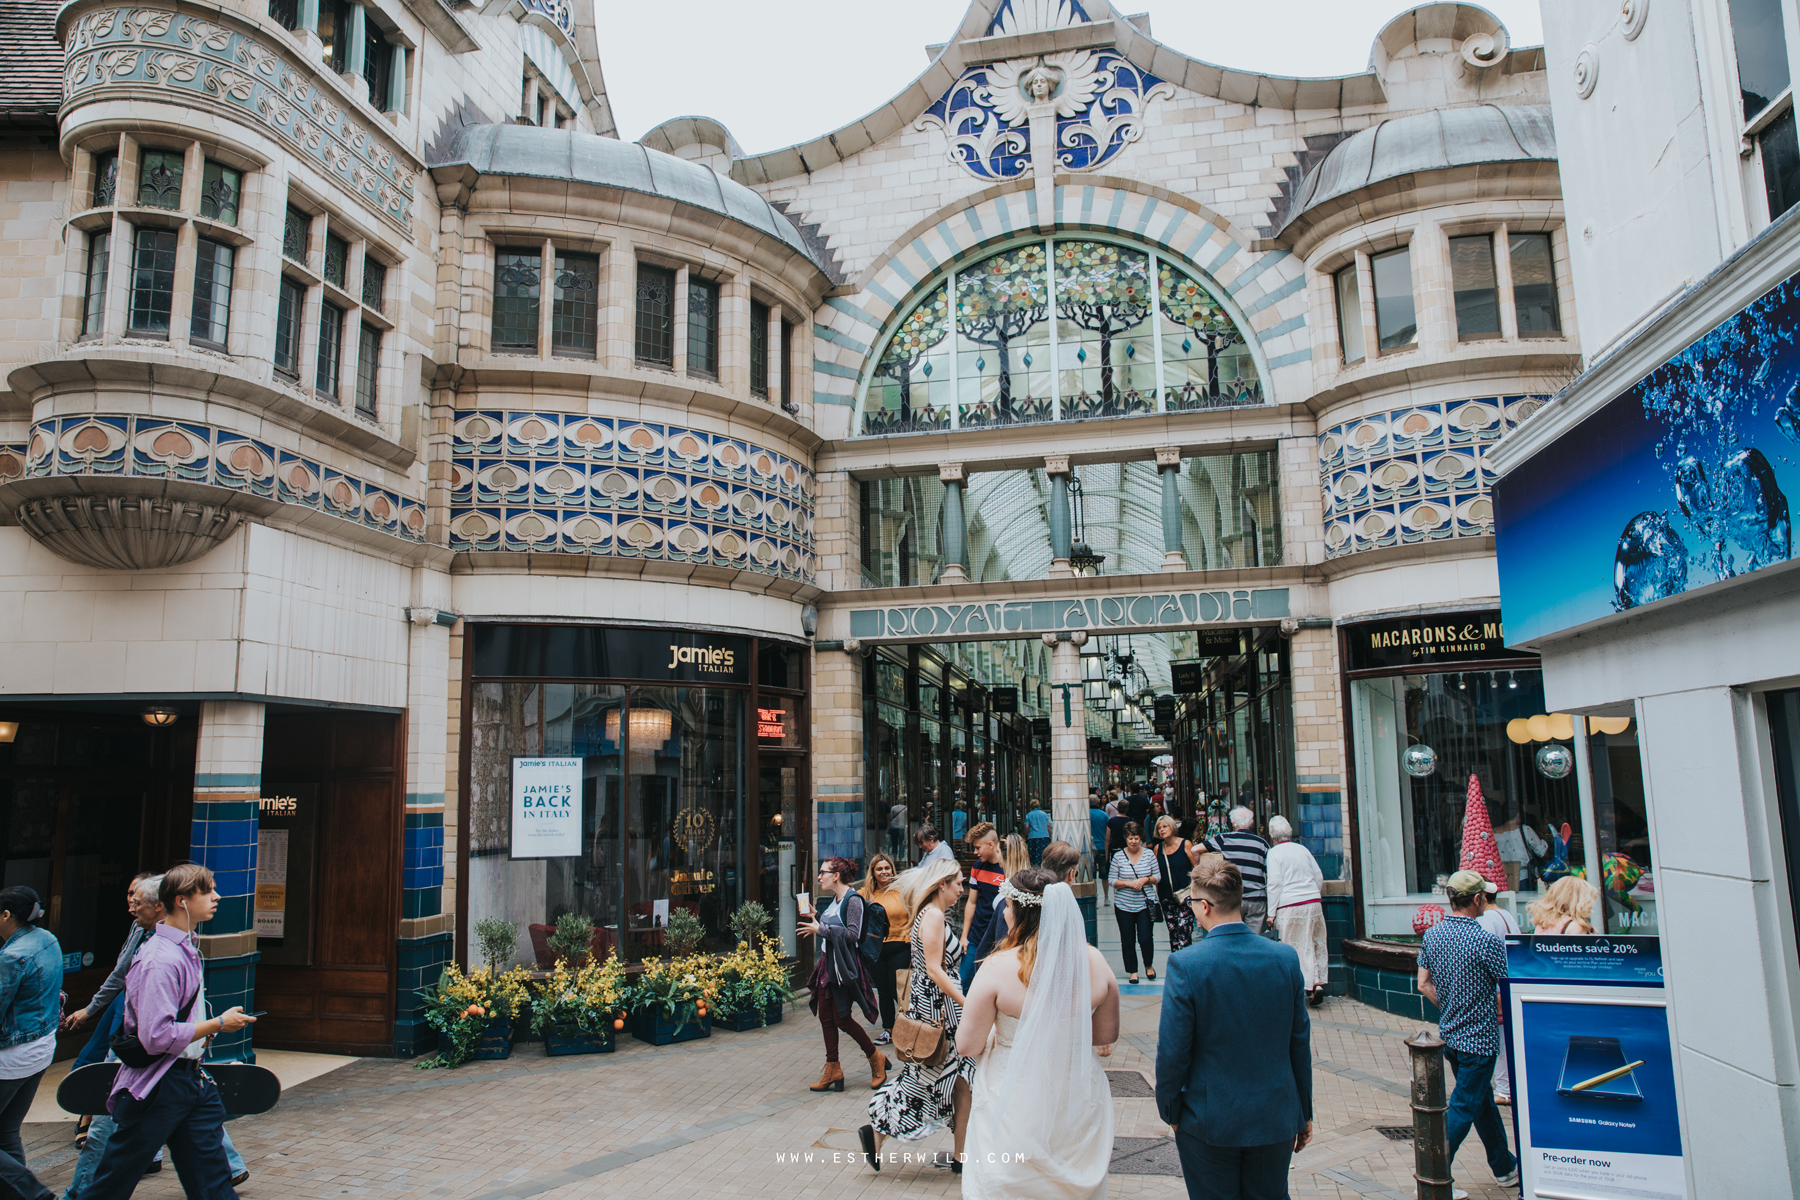 Norwich_Castle_Arcade_Grosvenor_Chip_Birdcage_Cathedral_Cloisters_Refectory_Wedding_Photography_Esther_Wild_Photographer_Norfolk_Kings_Lynn_3R8A1285.jpg